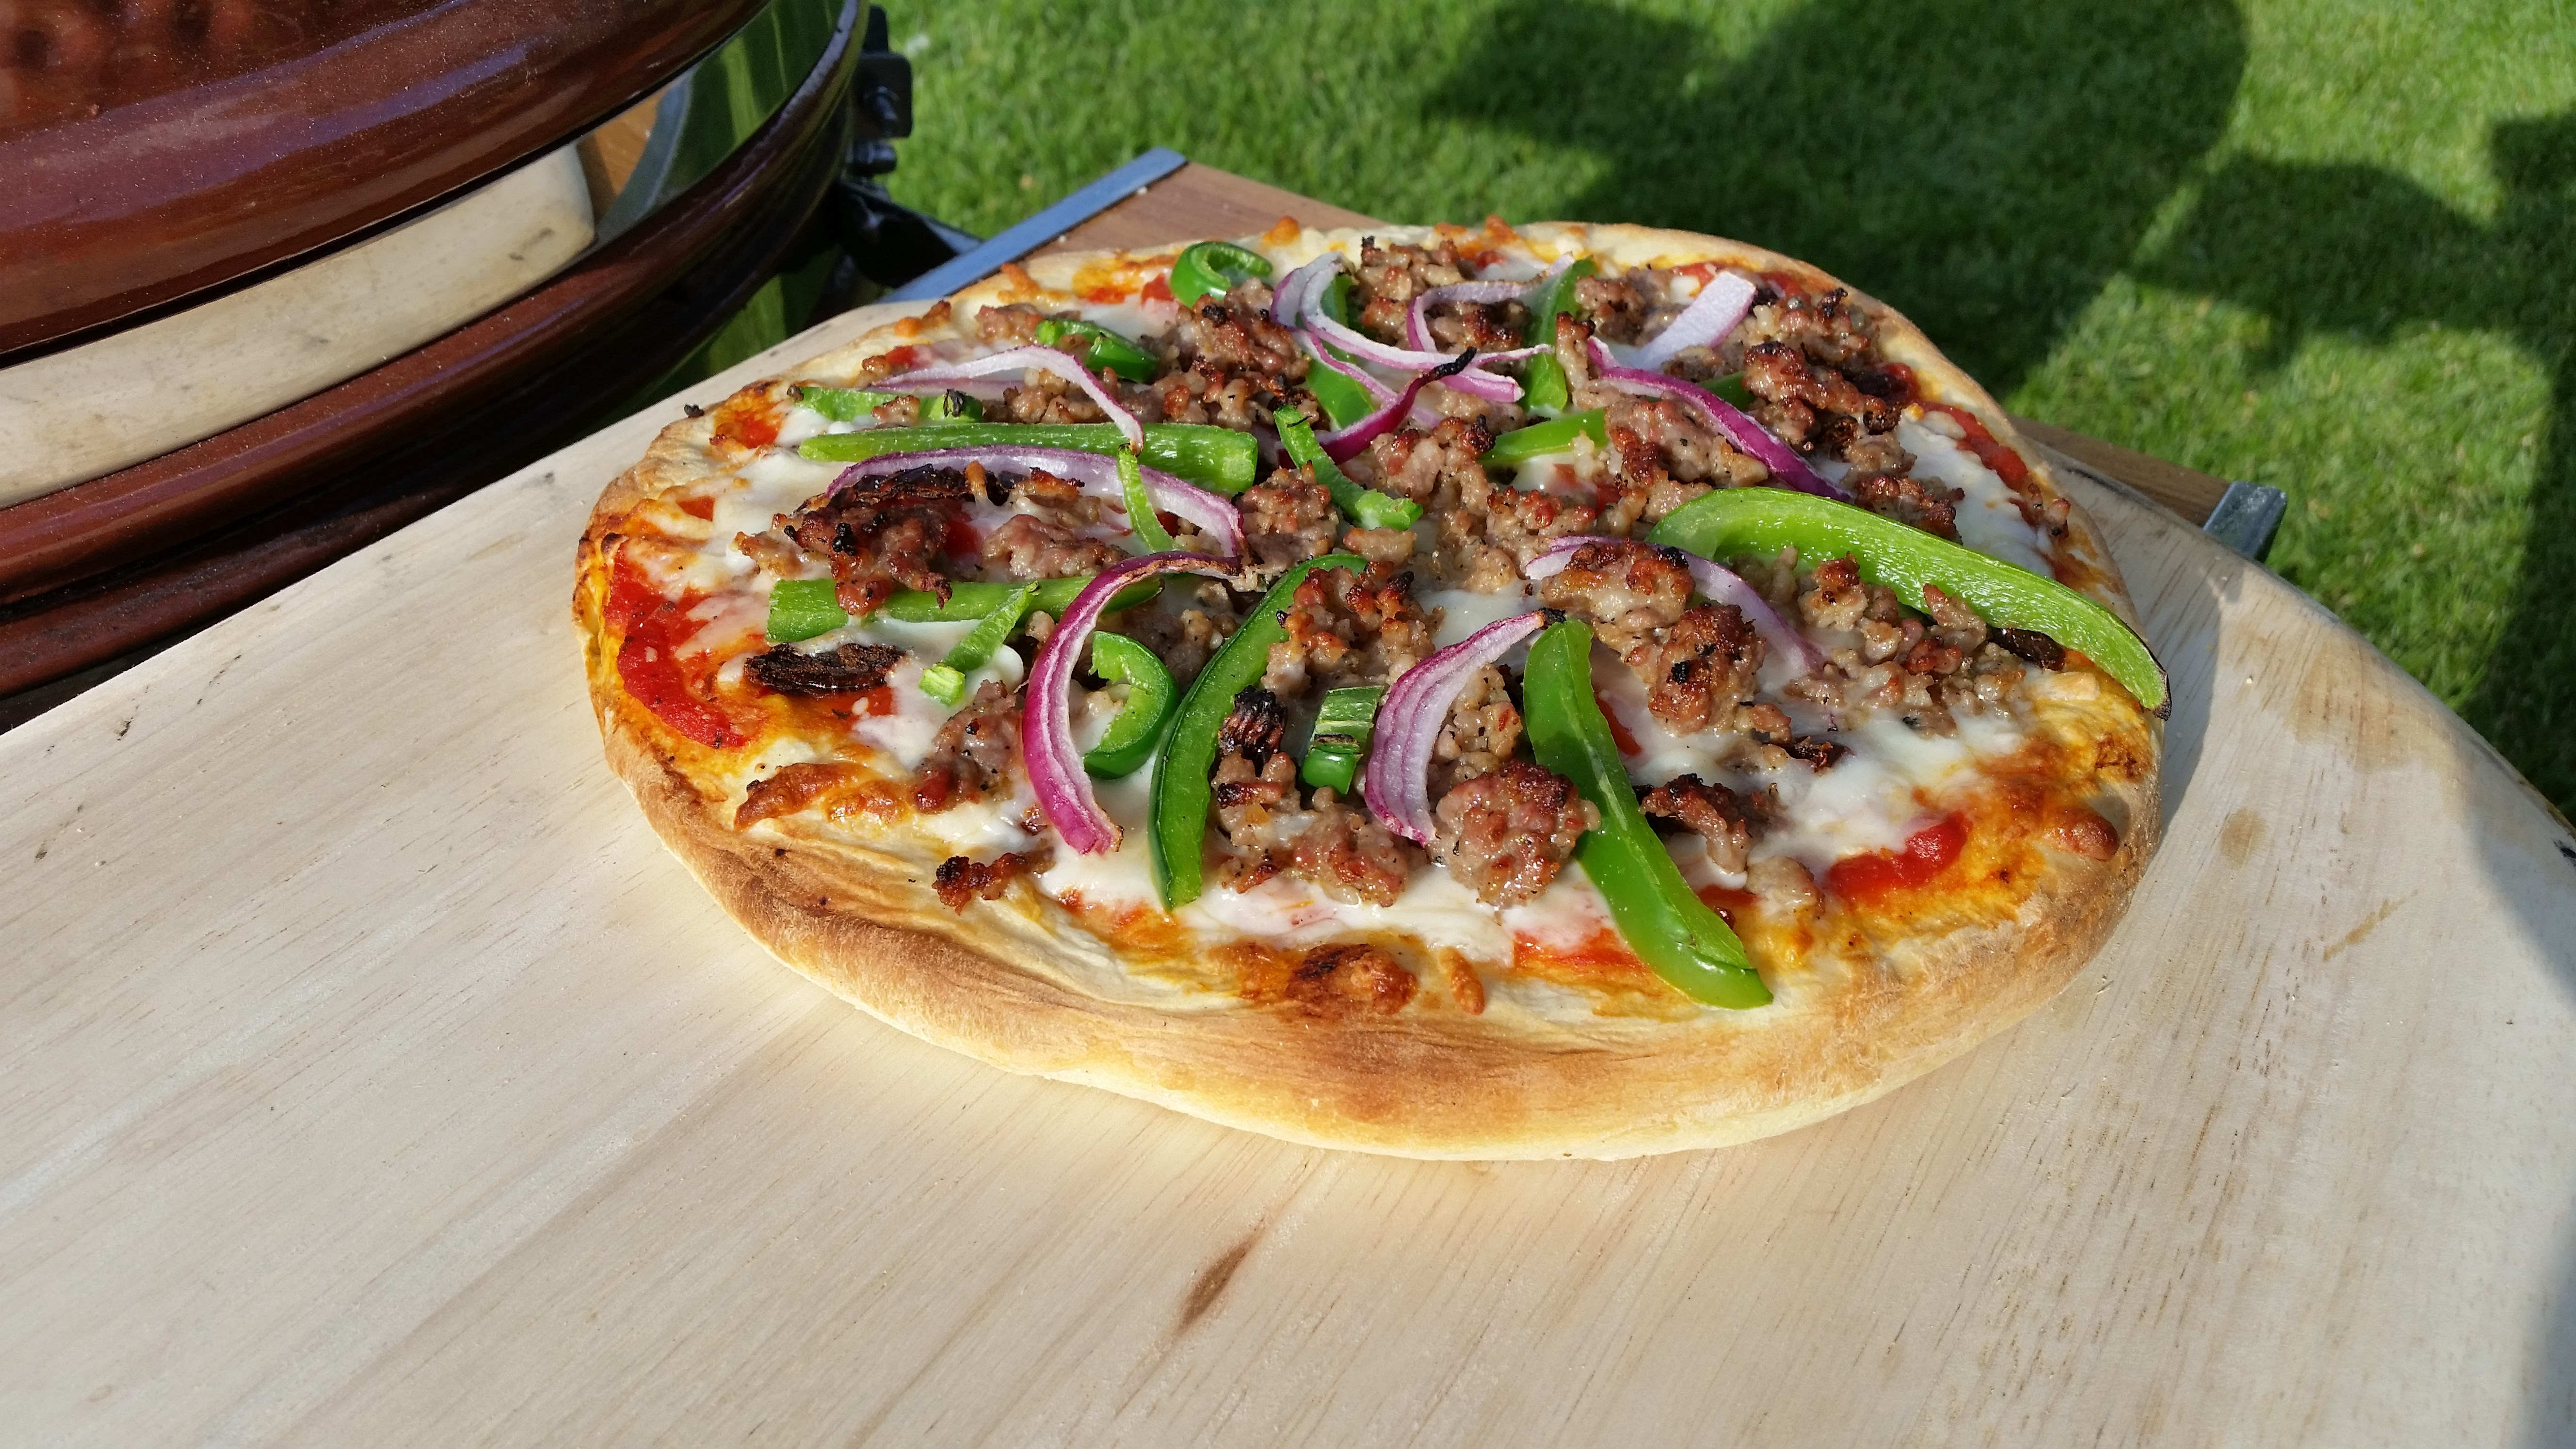 Grilled, Homemade Pizza with Ground Beef, Green Pepper, and Onions